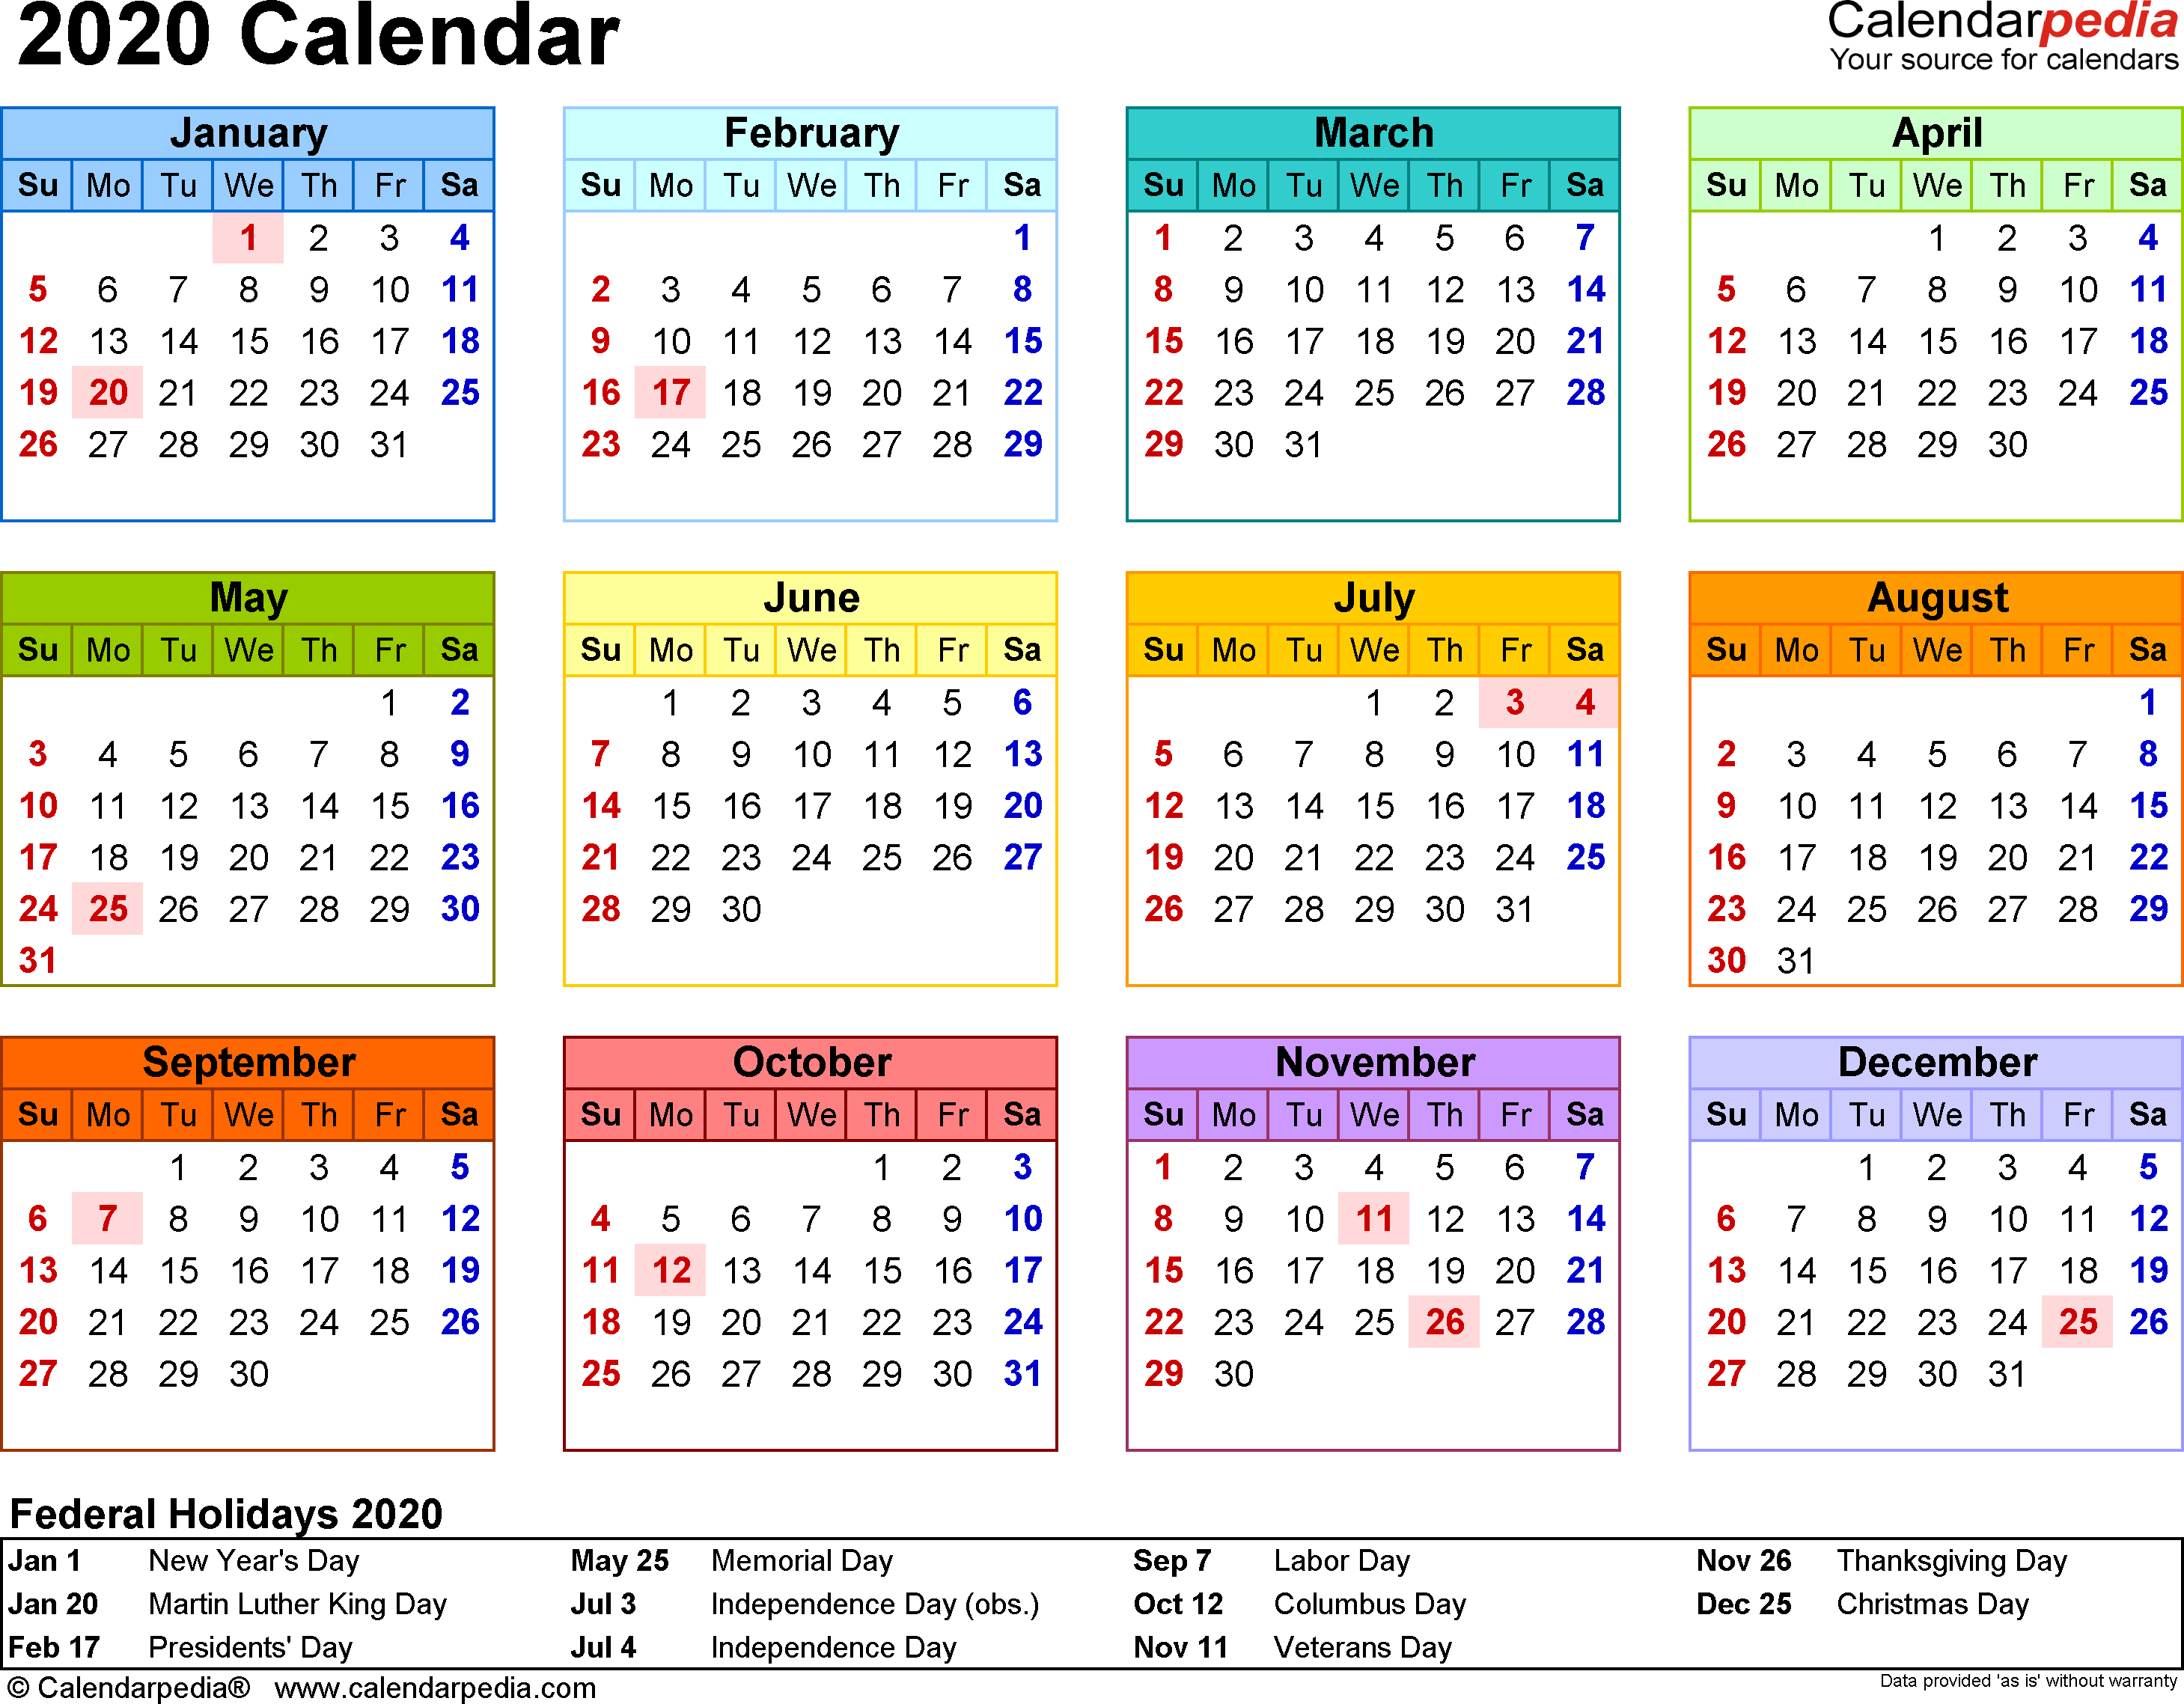 2020 Calendar - Download 17 Free Printable Excel Templates (.xlsx) within Vetex 2020 Word Calendar Download